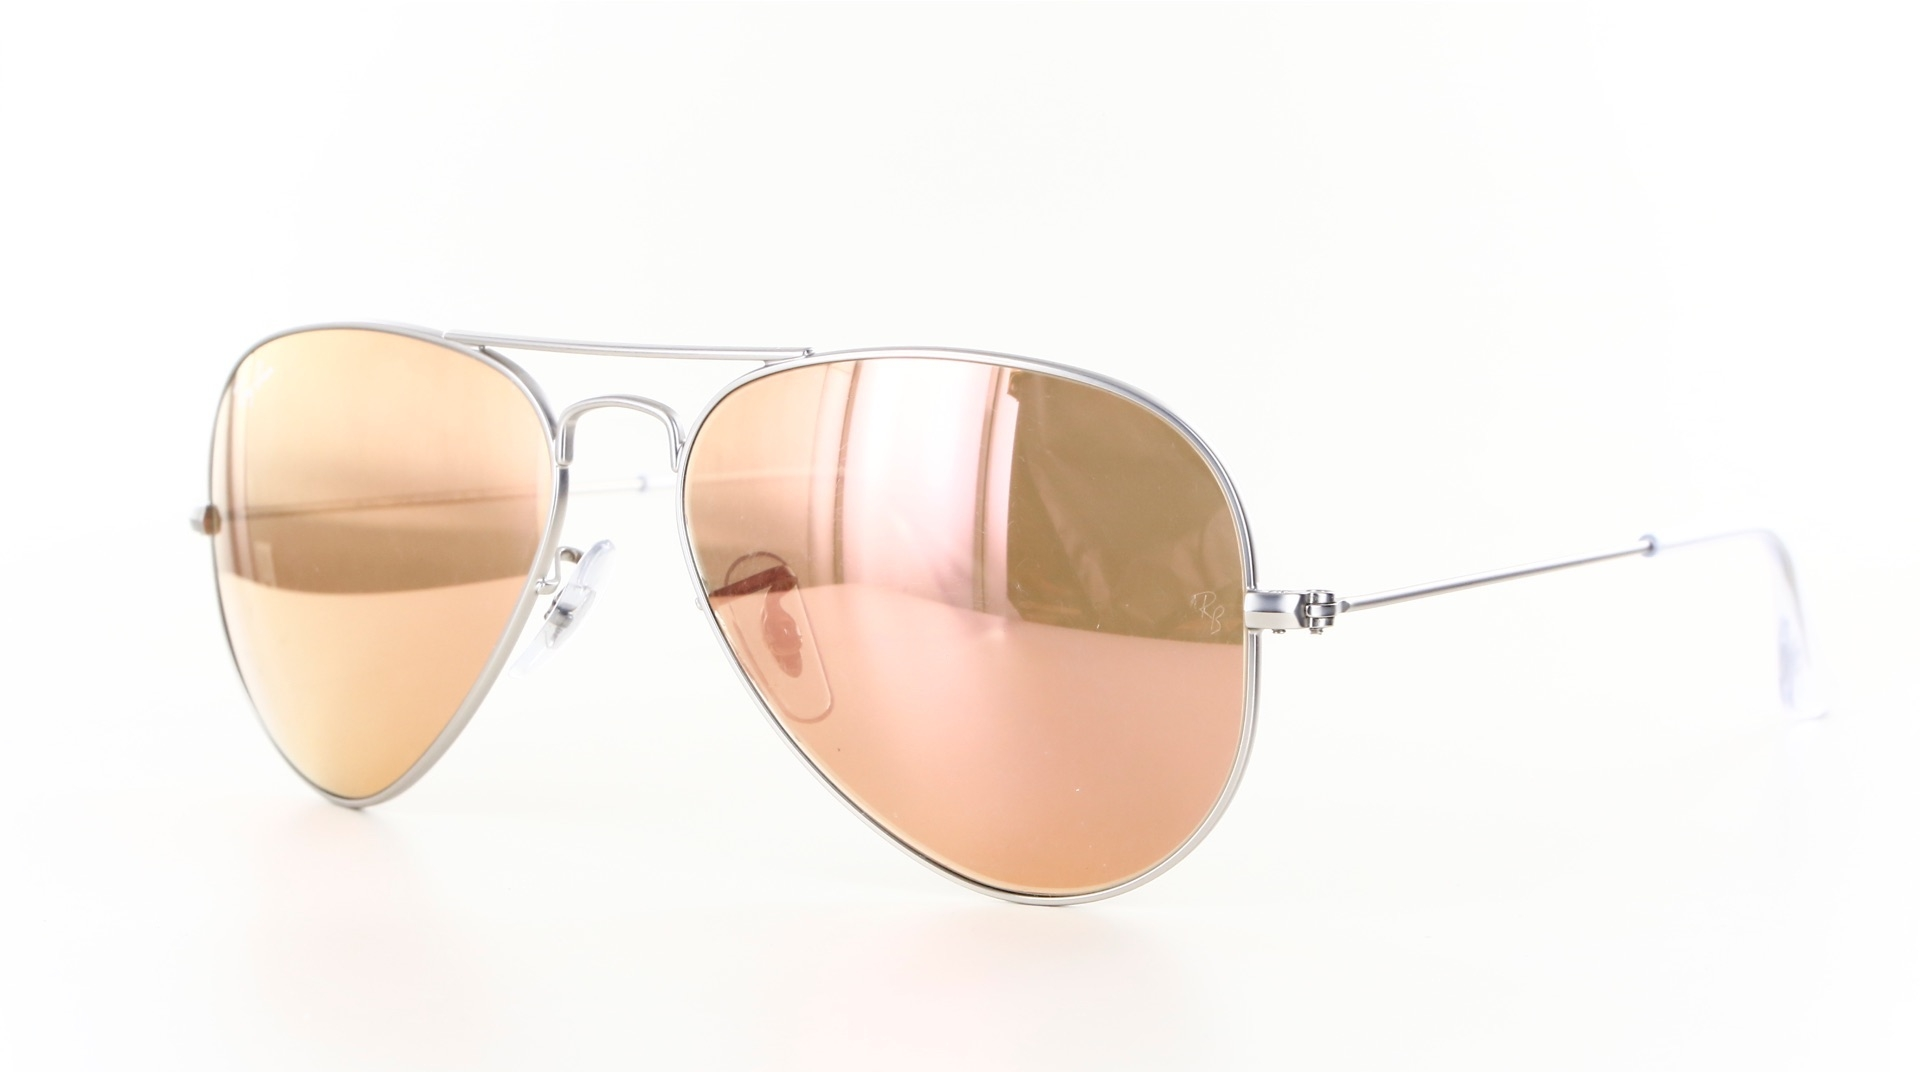 Ray-Ban - ref: 72347